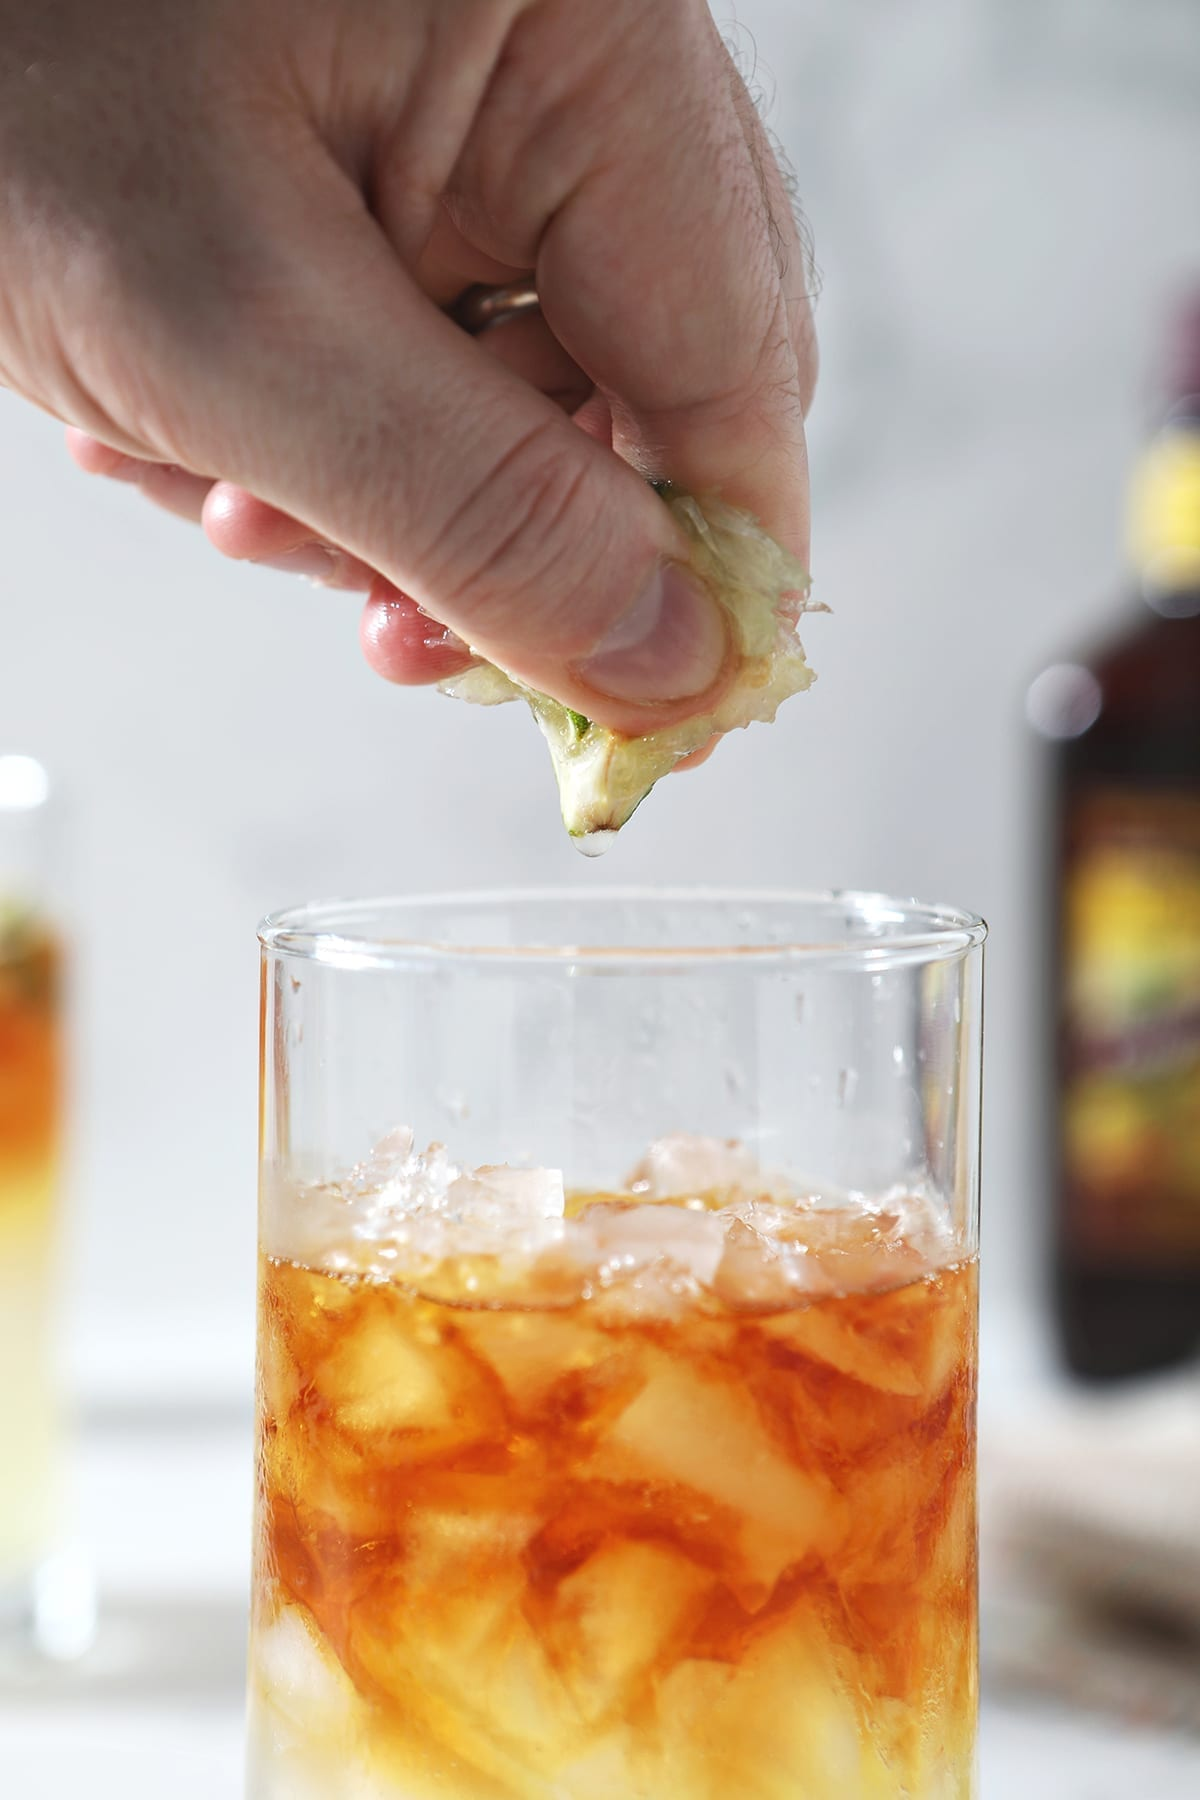 A lime wedge is squeezed into a highball glass over a brown liquid